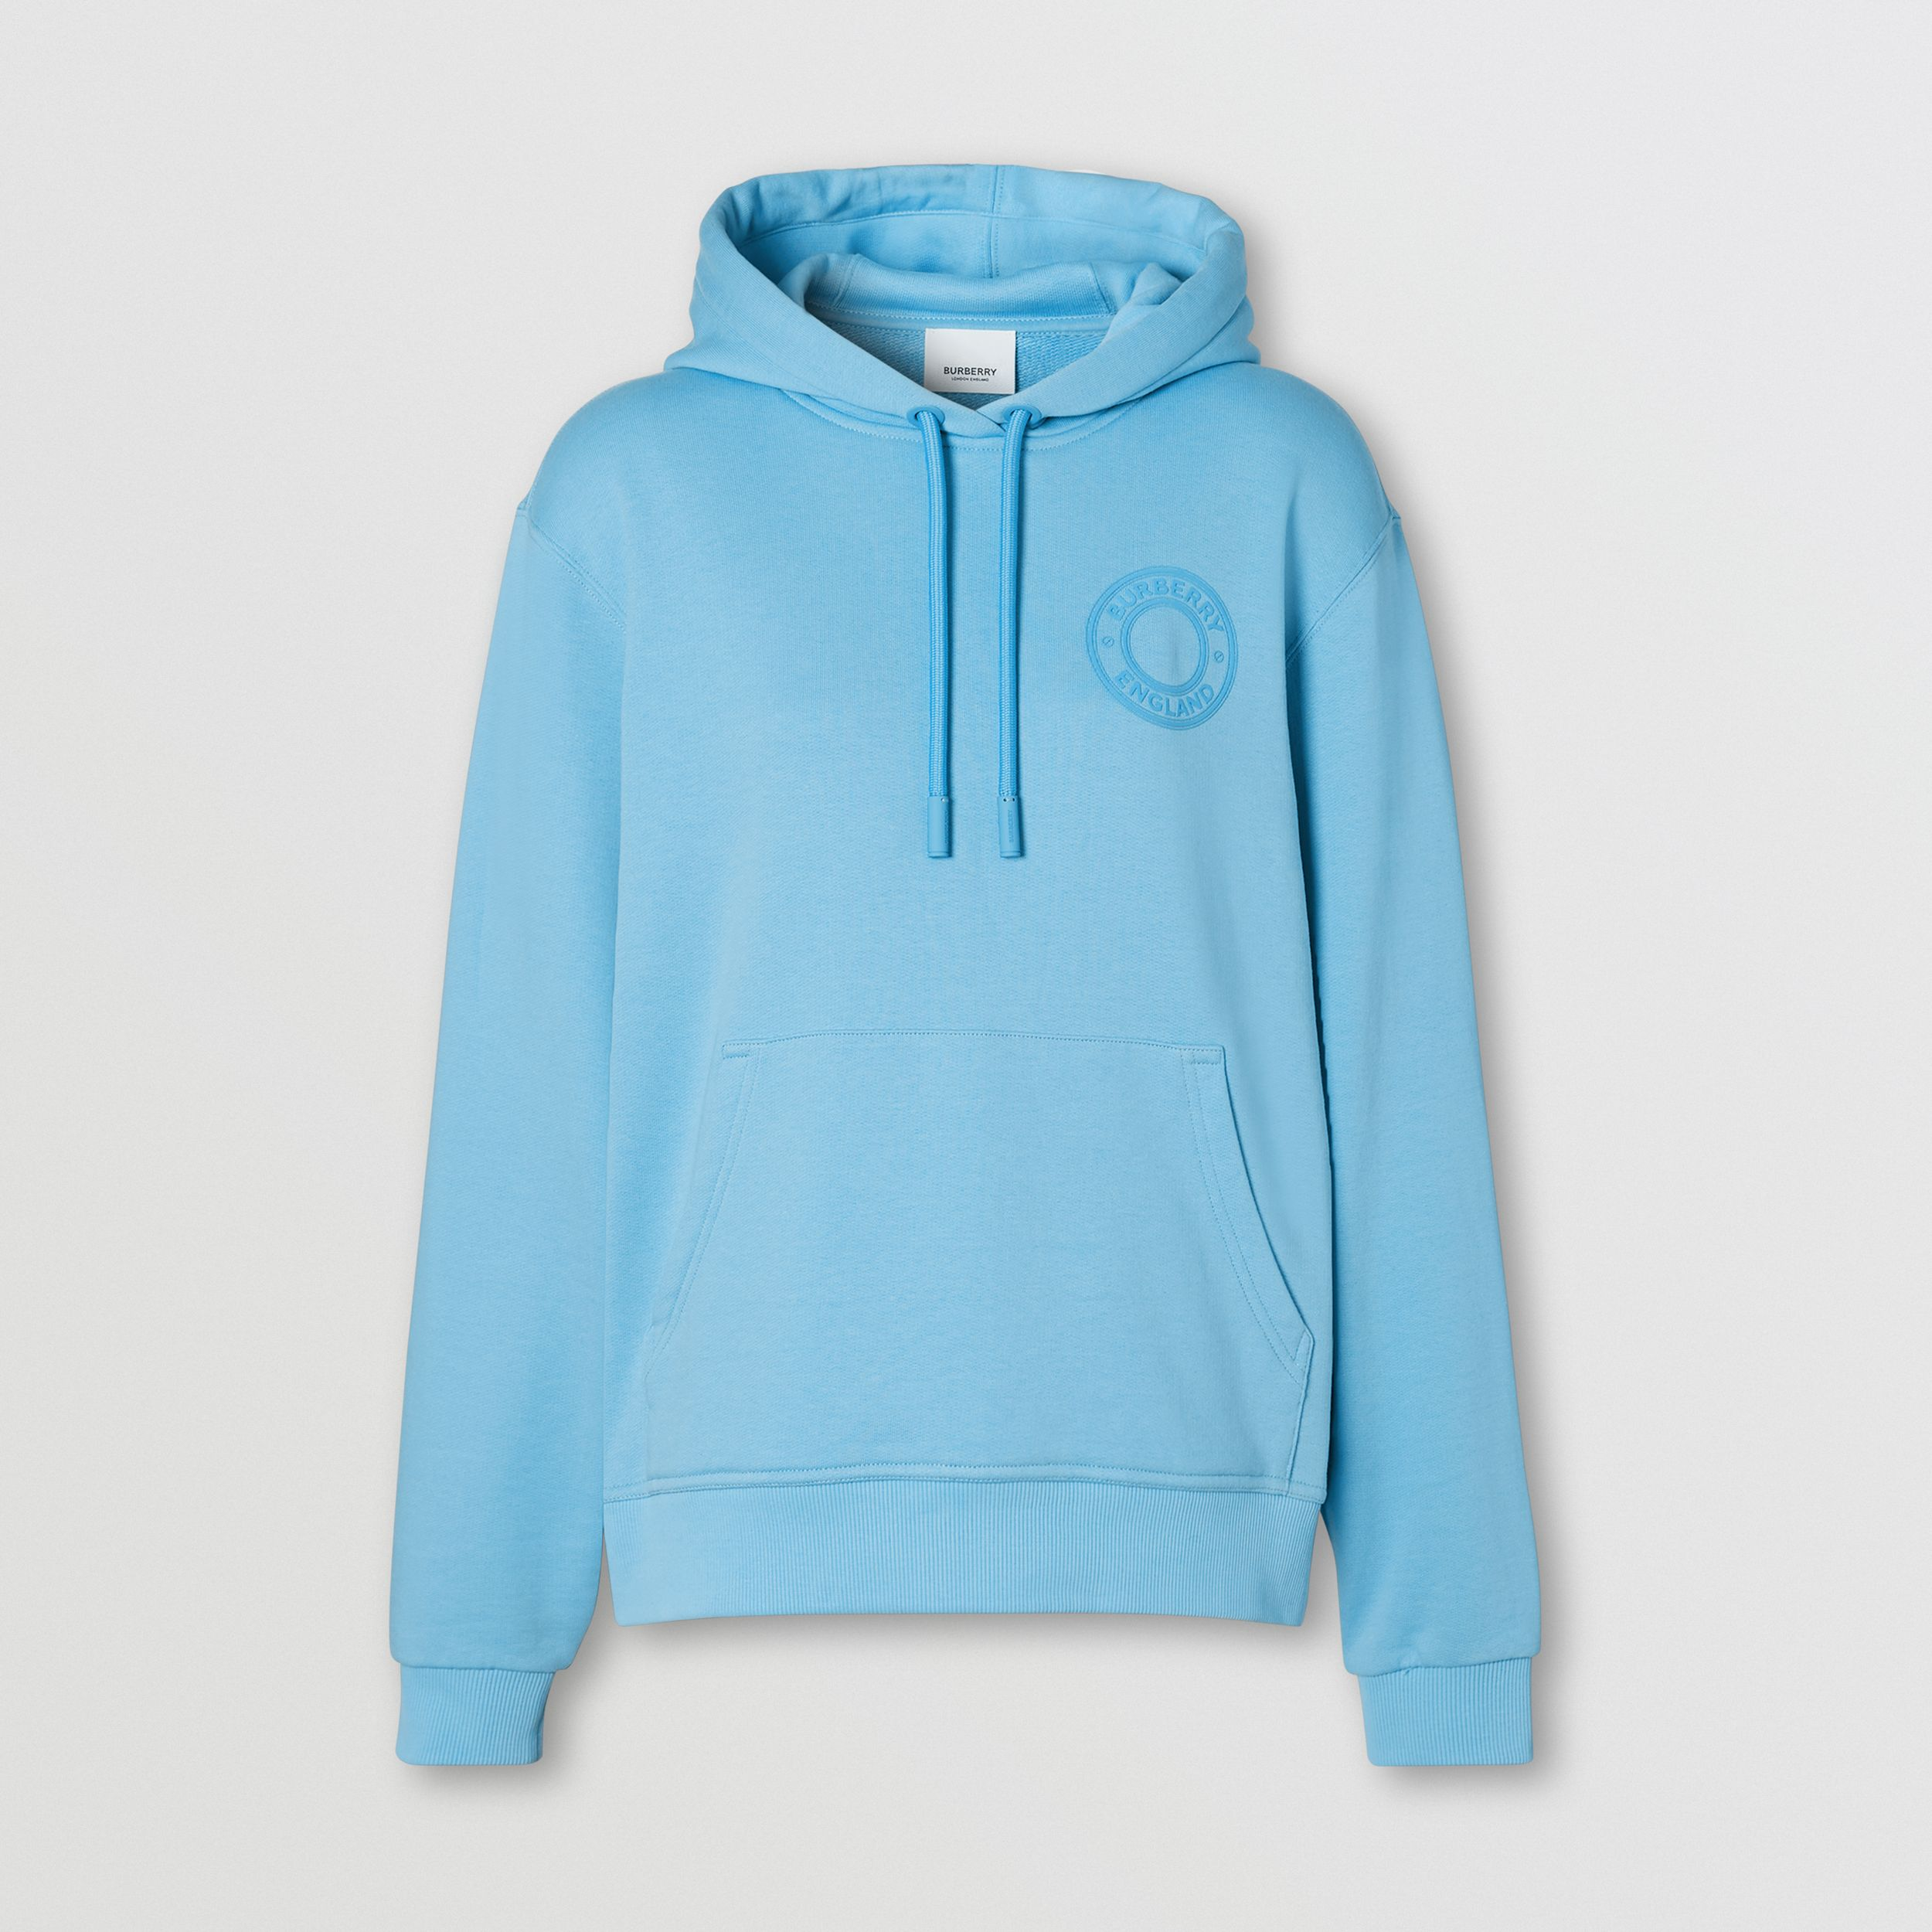 Logo Graphic Cotton Oversized Hoodie in Blue Topaz - Women | Burberry - 4